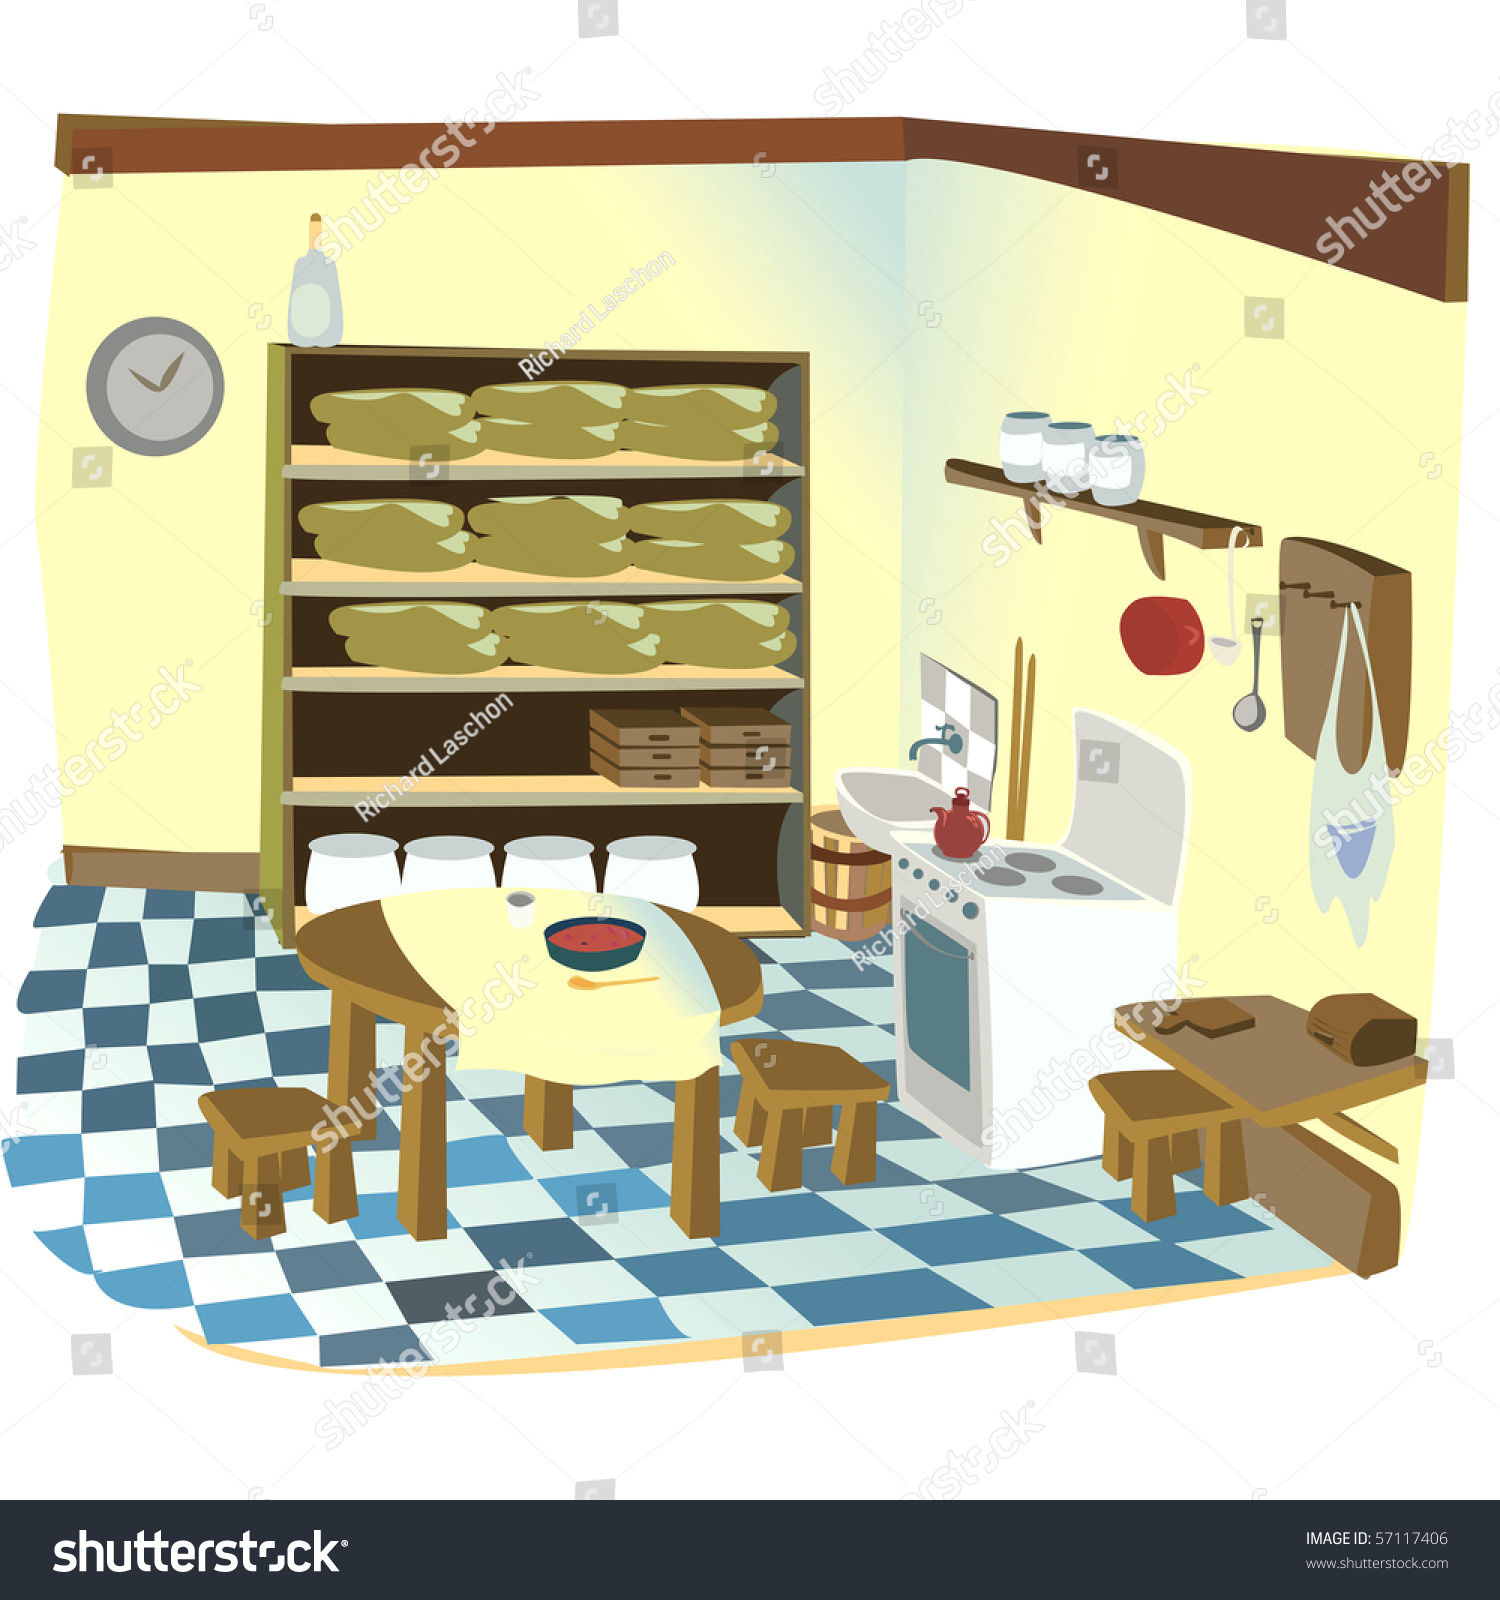 Cartoon Kitchen Furniture: Cartoon Illustration Old Rustic Kitchen Stock Illustration